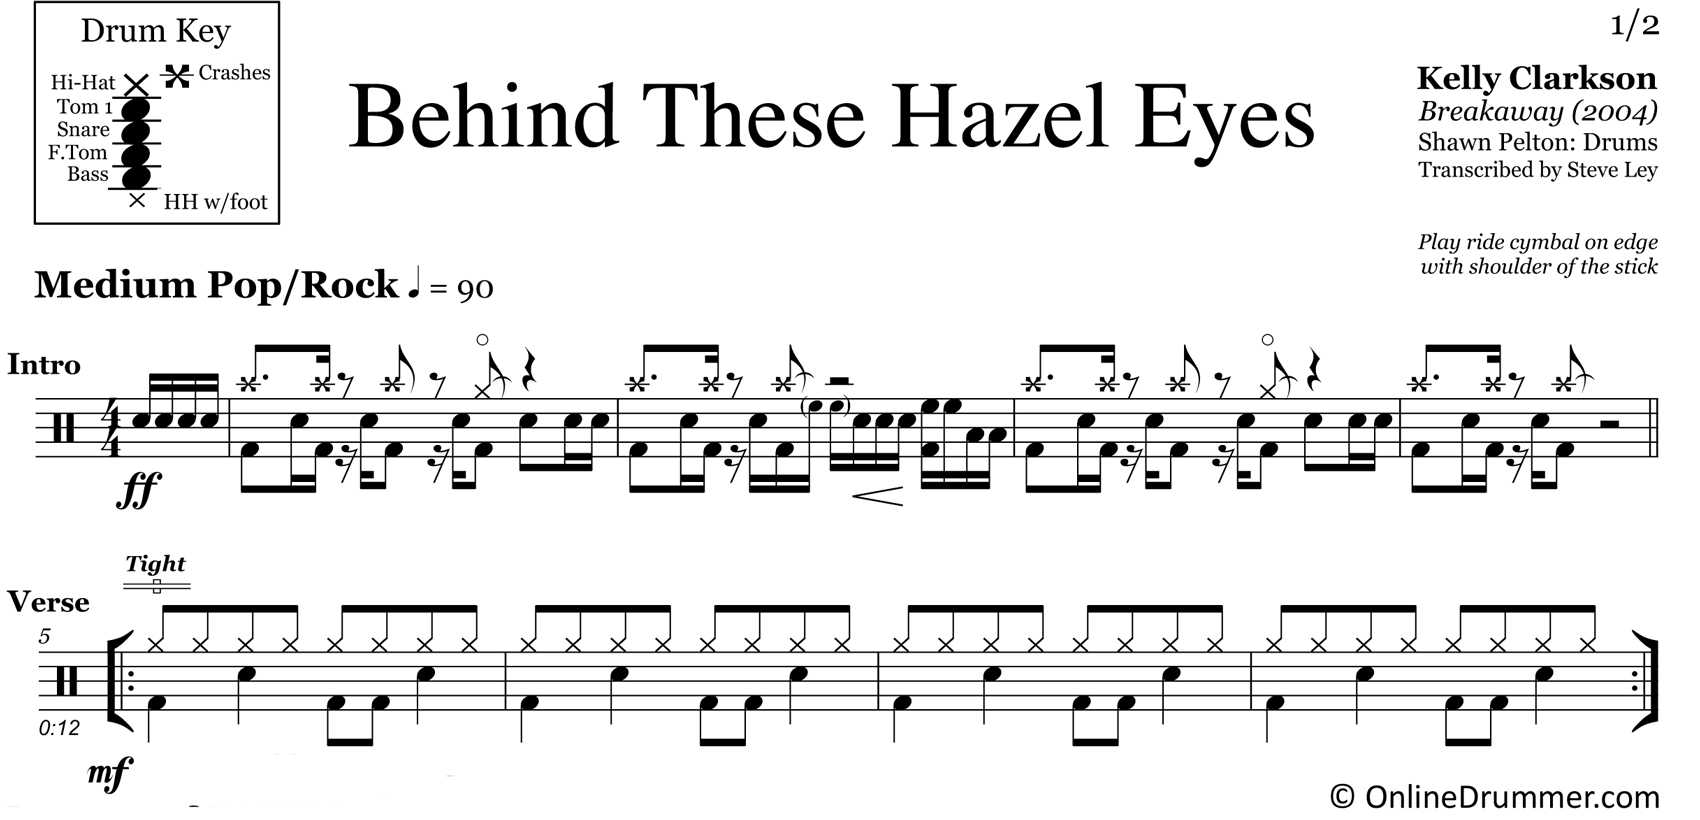 Behind These Hazel Eyes - Kelly Clarkson - Drum Sheet Music